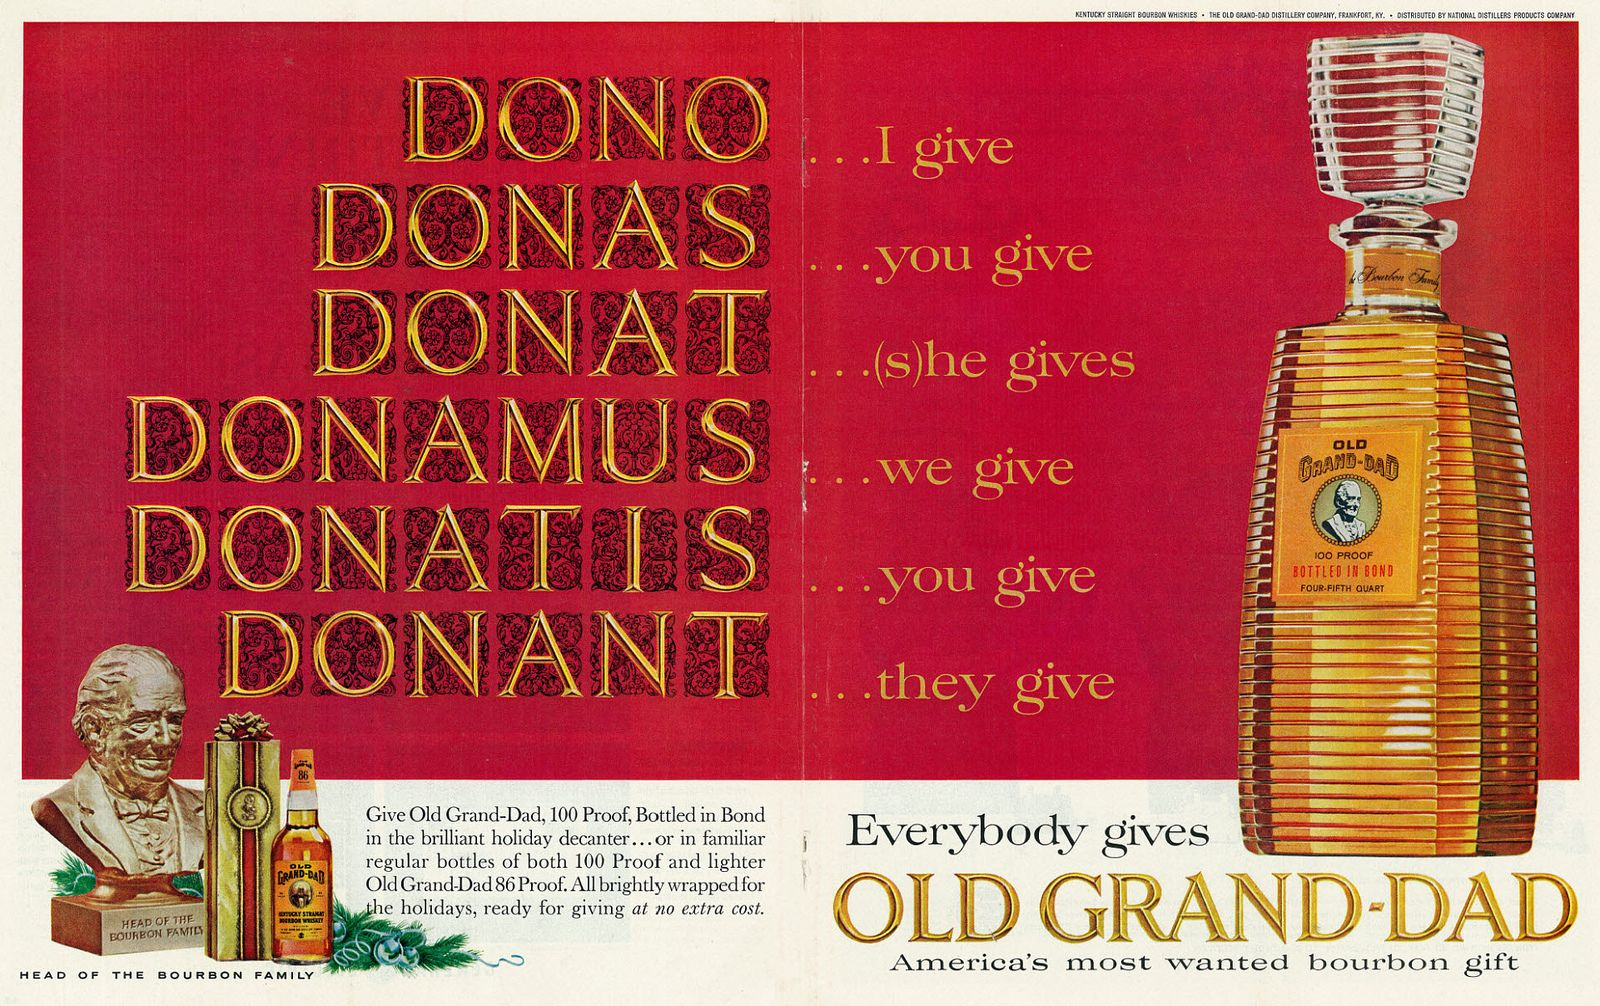 1963 Old Grand-Dad advertisement, via user Classic Film on Flickr (classic_film)